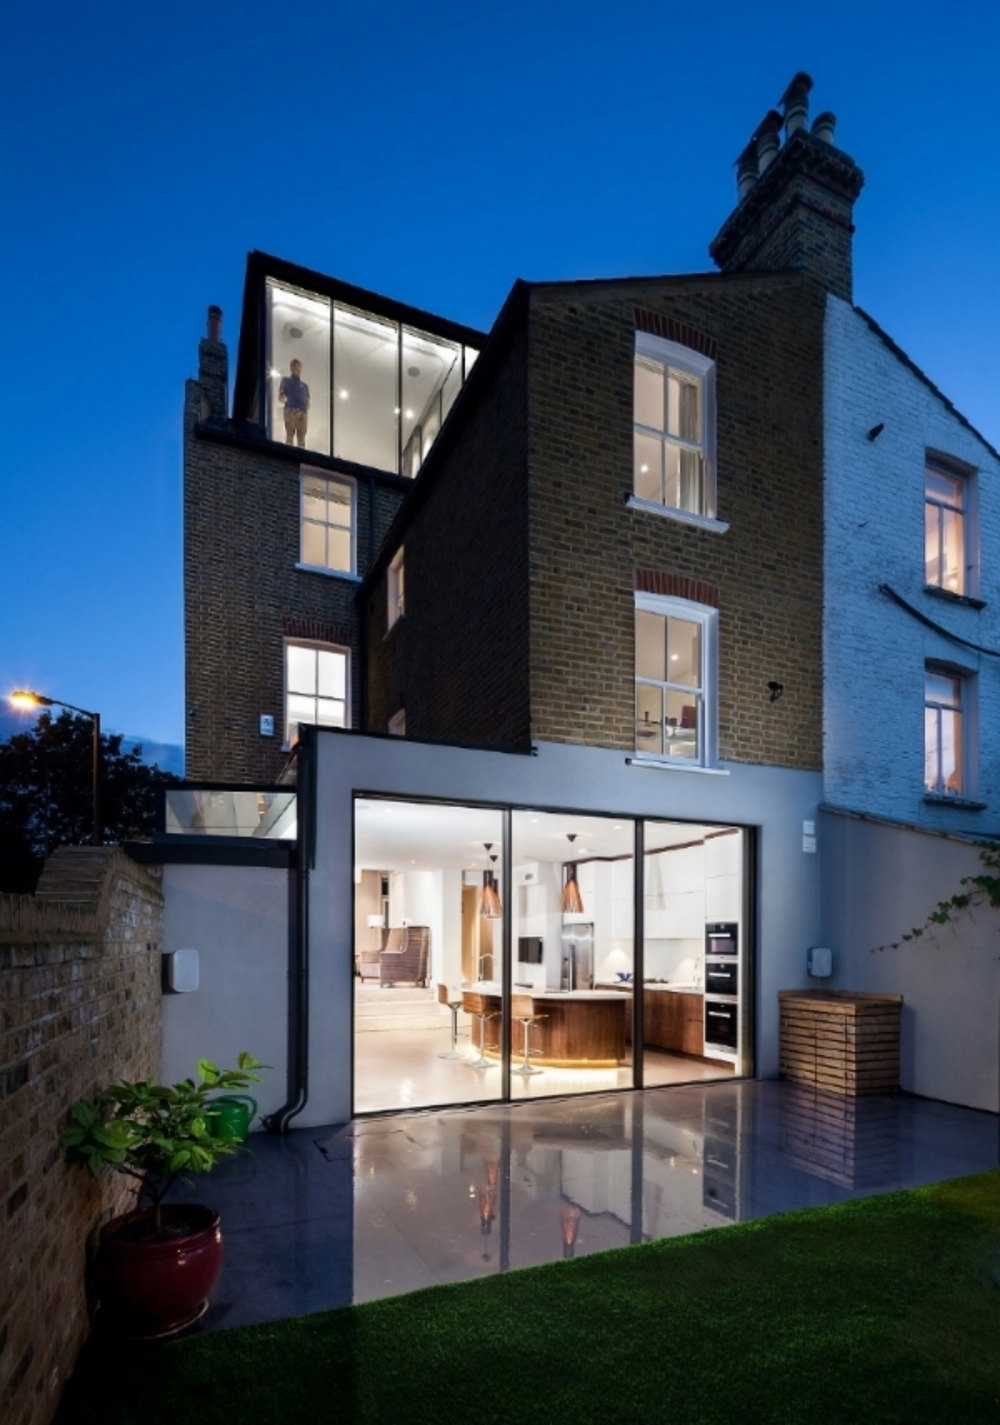 Wandsworth Common family home project managed by Opulen